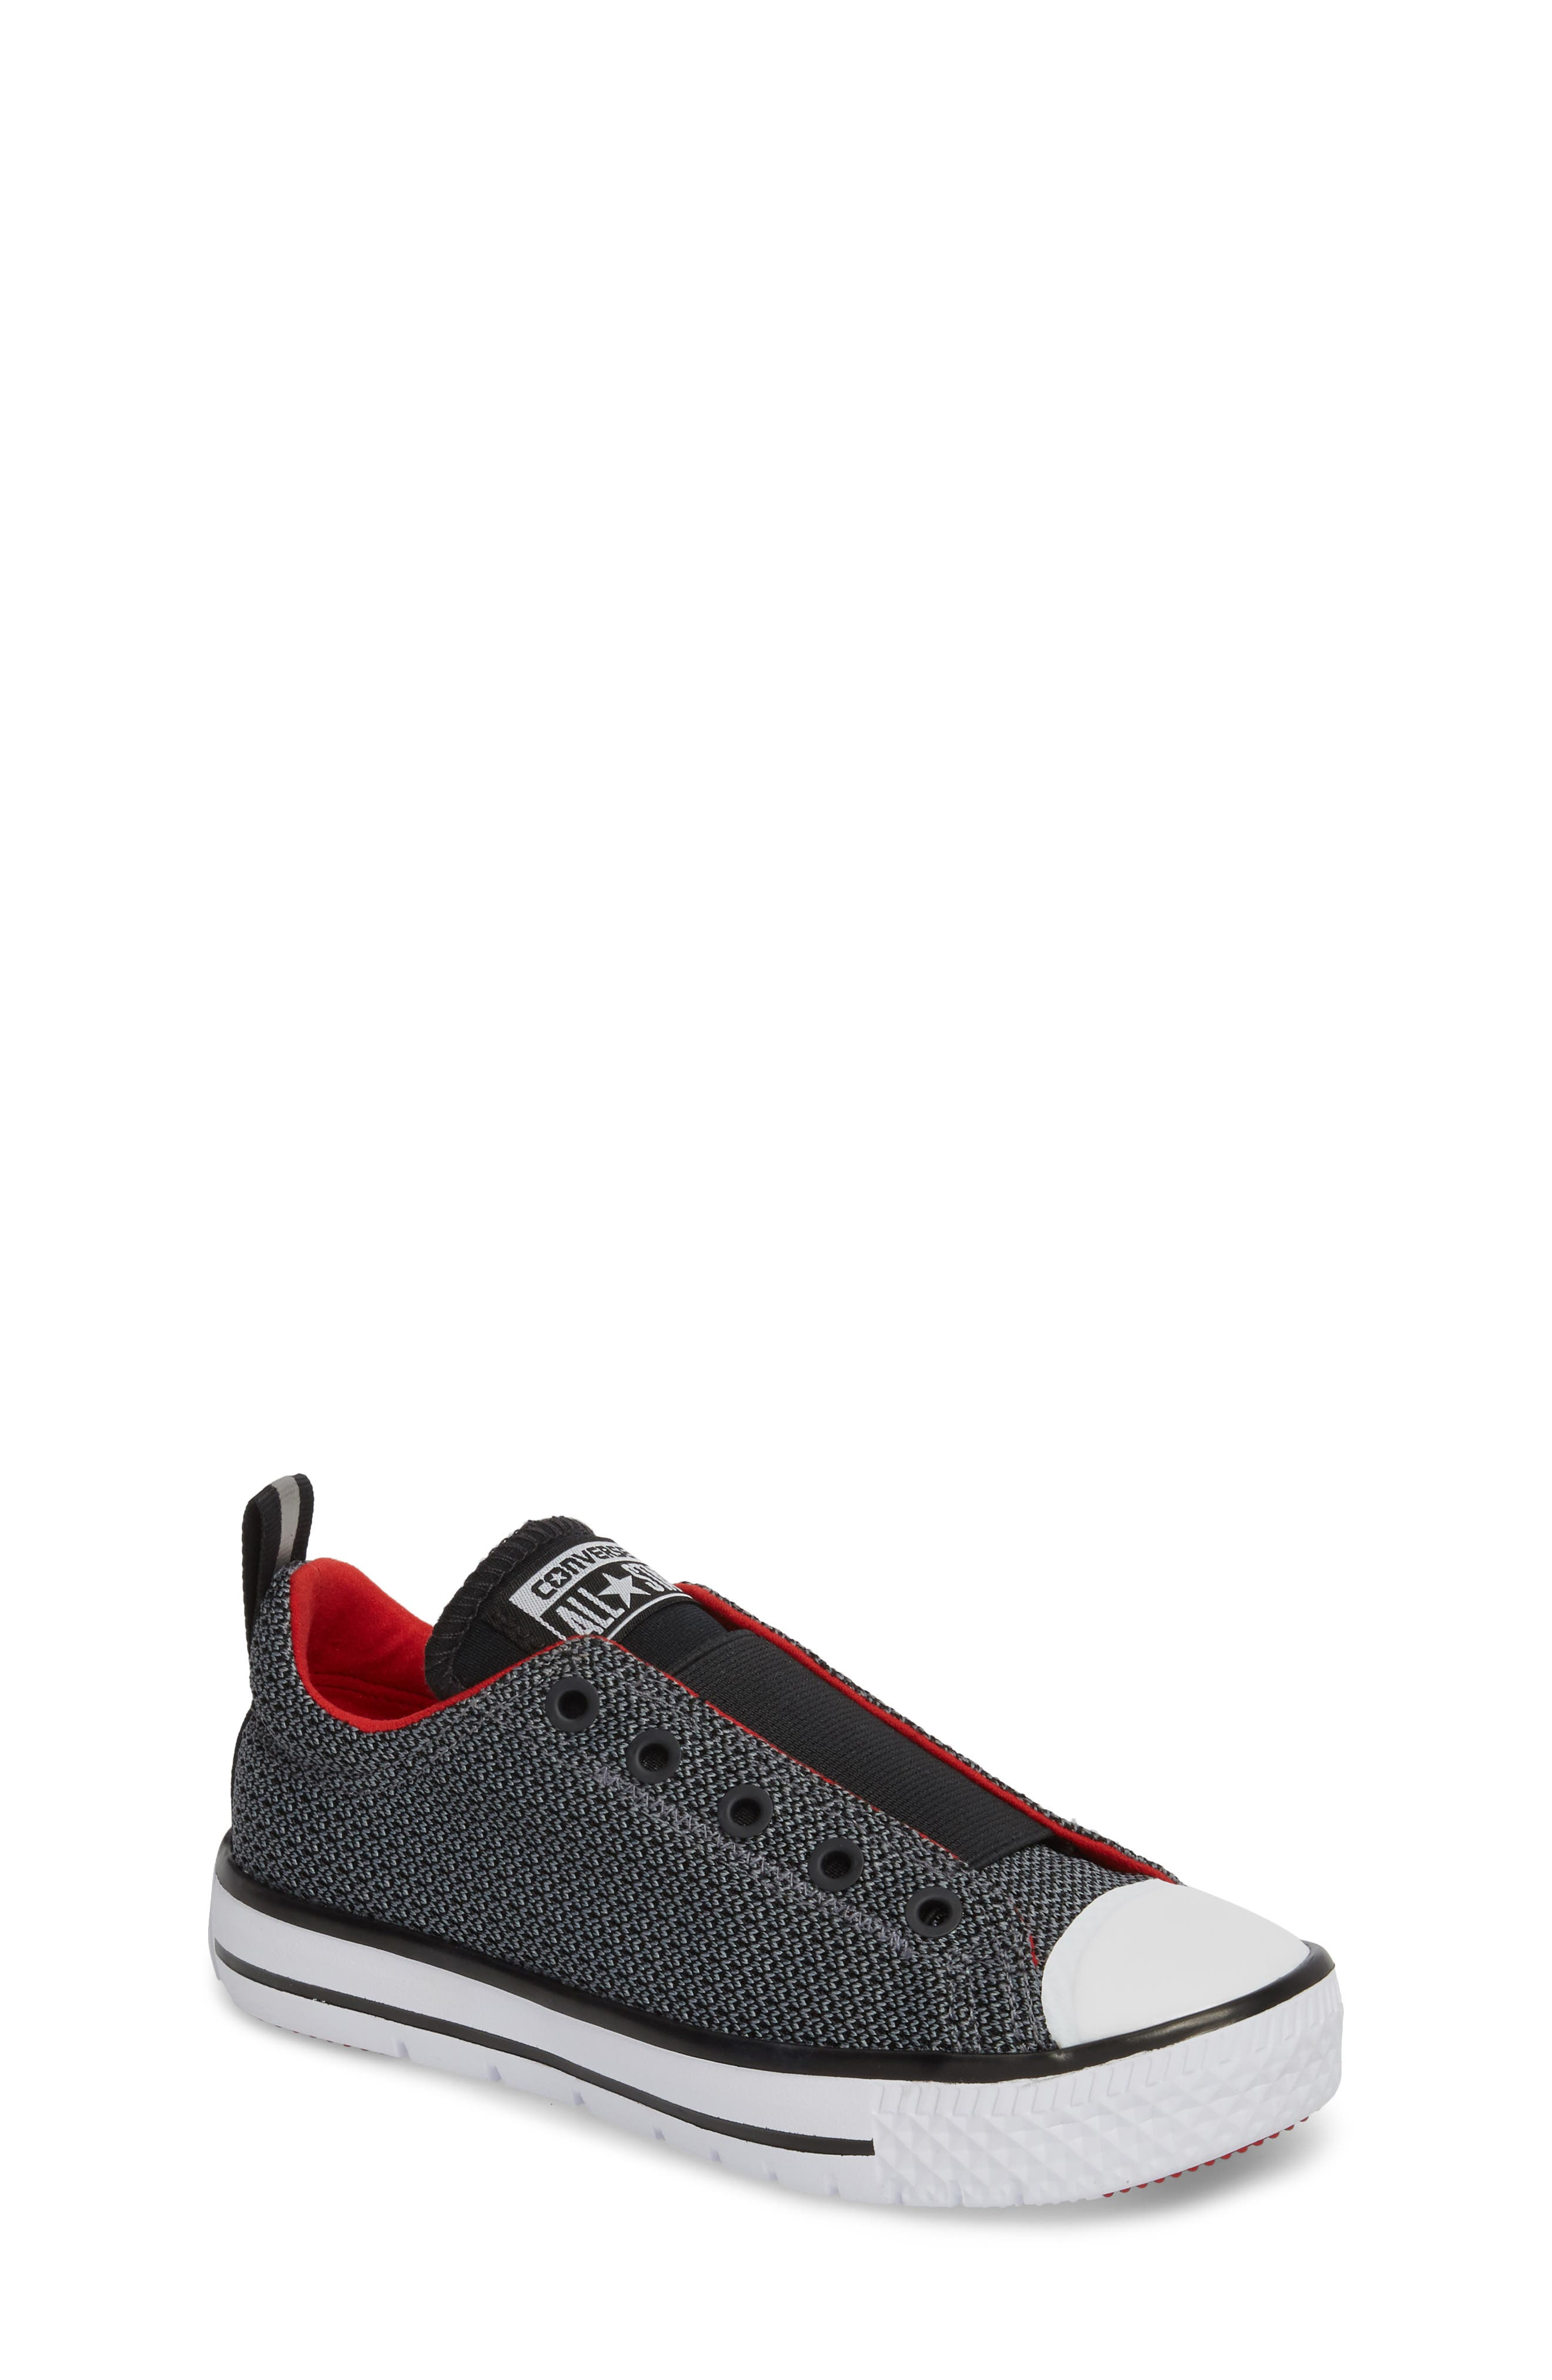 Chuck Taylor<sup>®</sup> All Star<sup>®</sup> Hyper Lite Ox Slip-On Sneaker,                         Main,                         color, 039